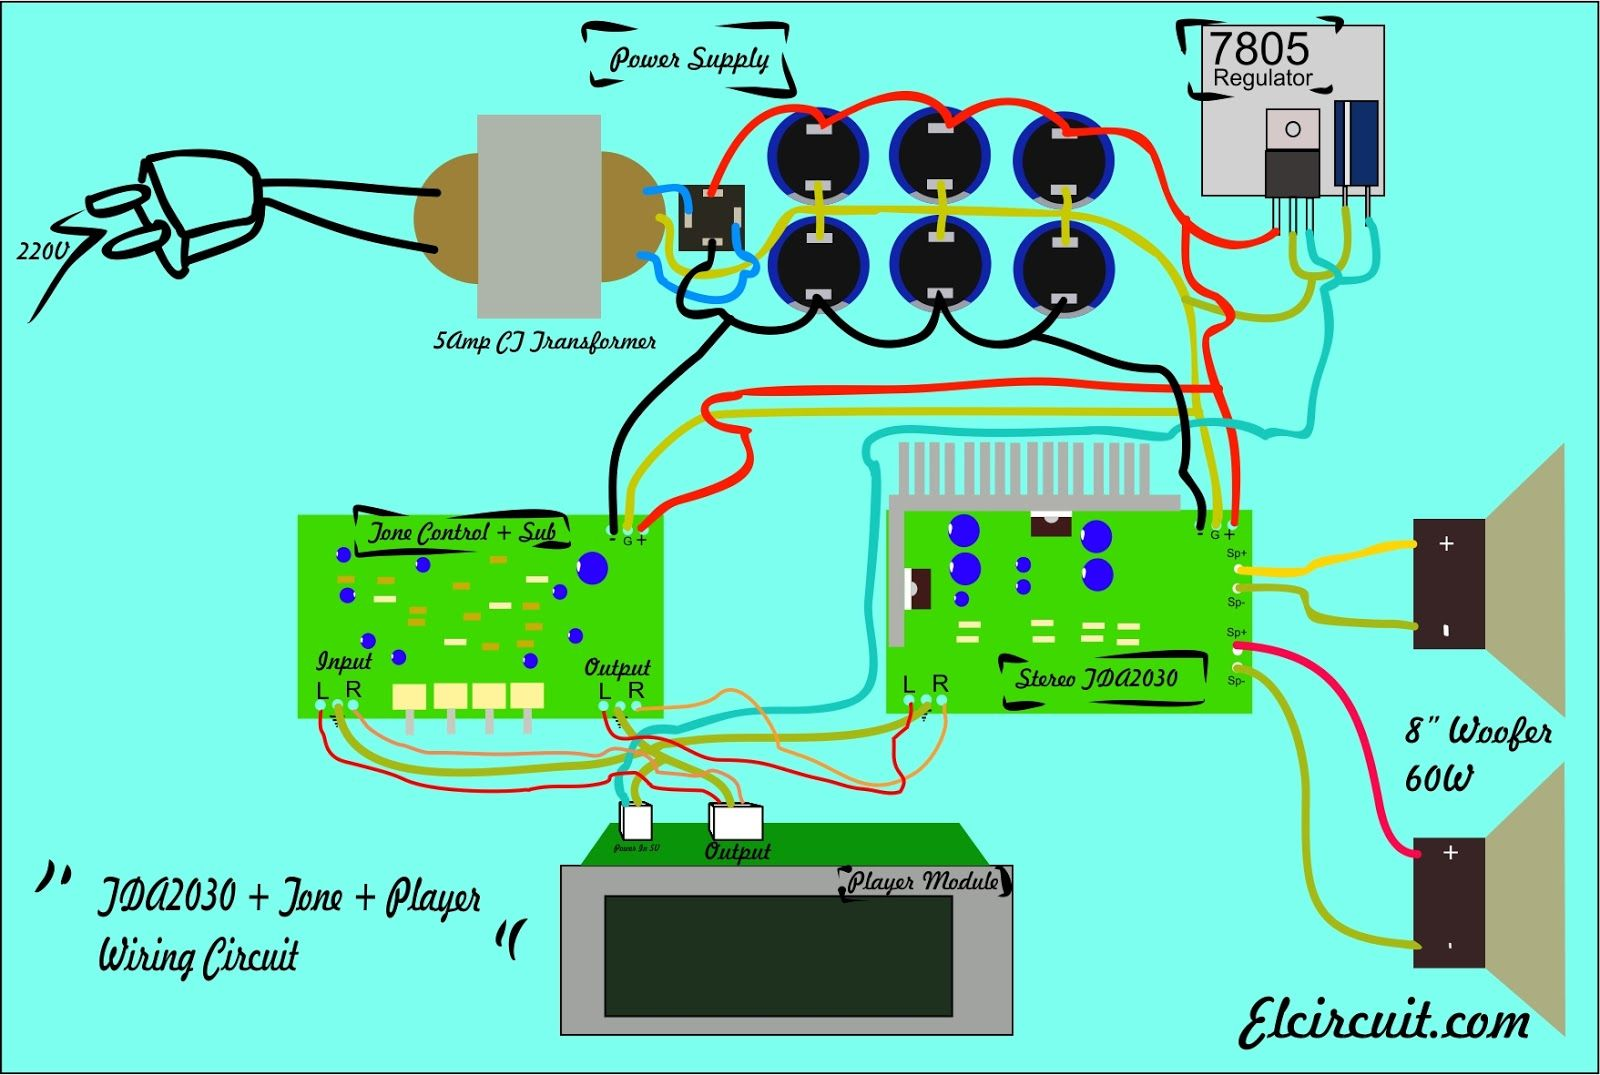 wiring circuit diagram tda2030 tone control subwoofer mp3 player [ 1600 x 1075 Pixel ]